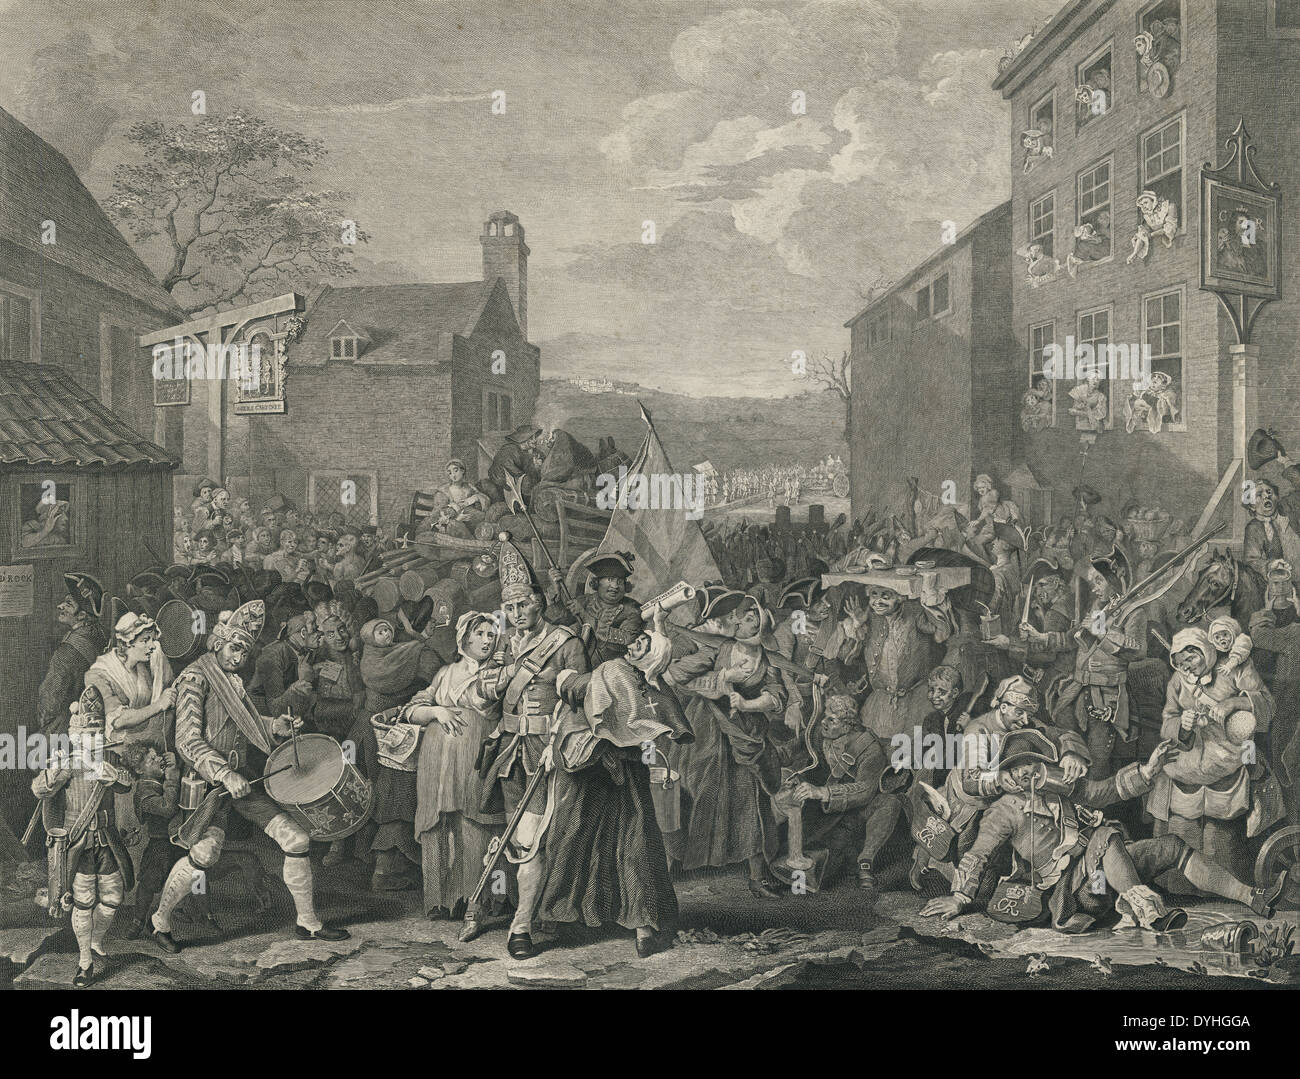 Original 1761 engraving, 'The March of the Guards to Finchley' by William Hogarth. - Stock Image